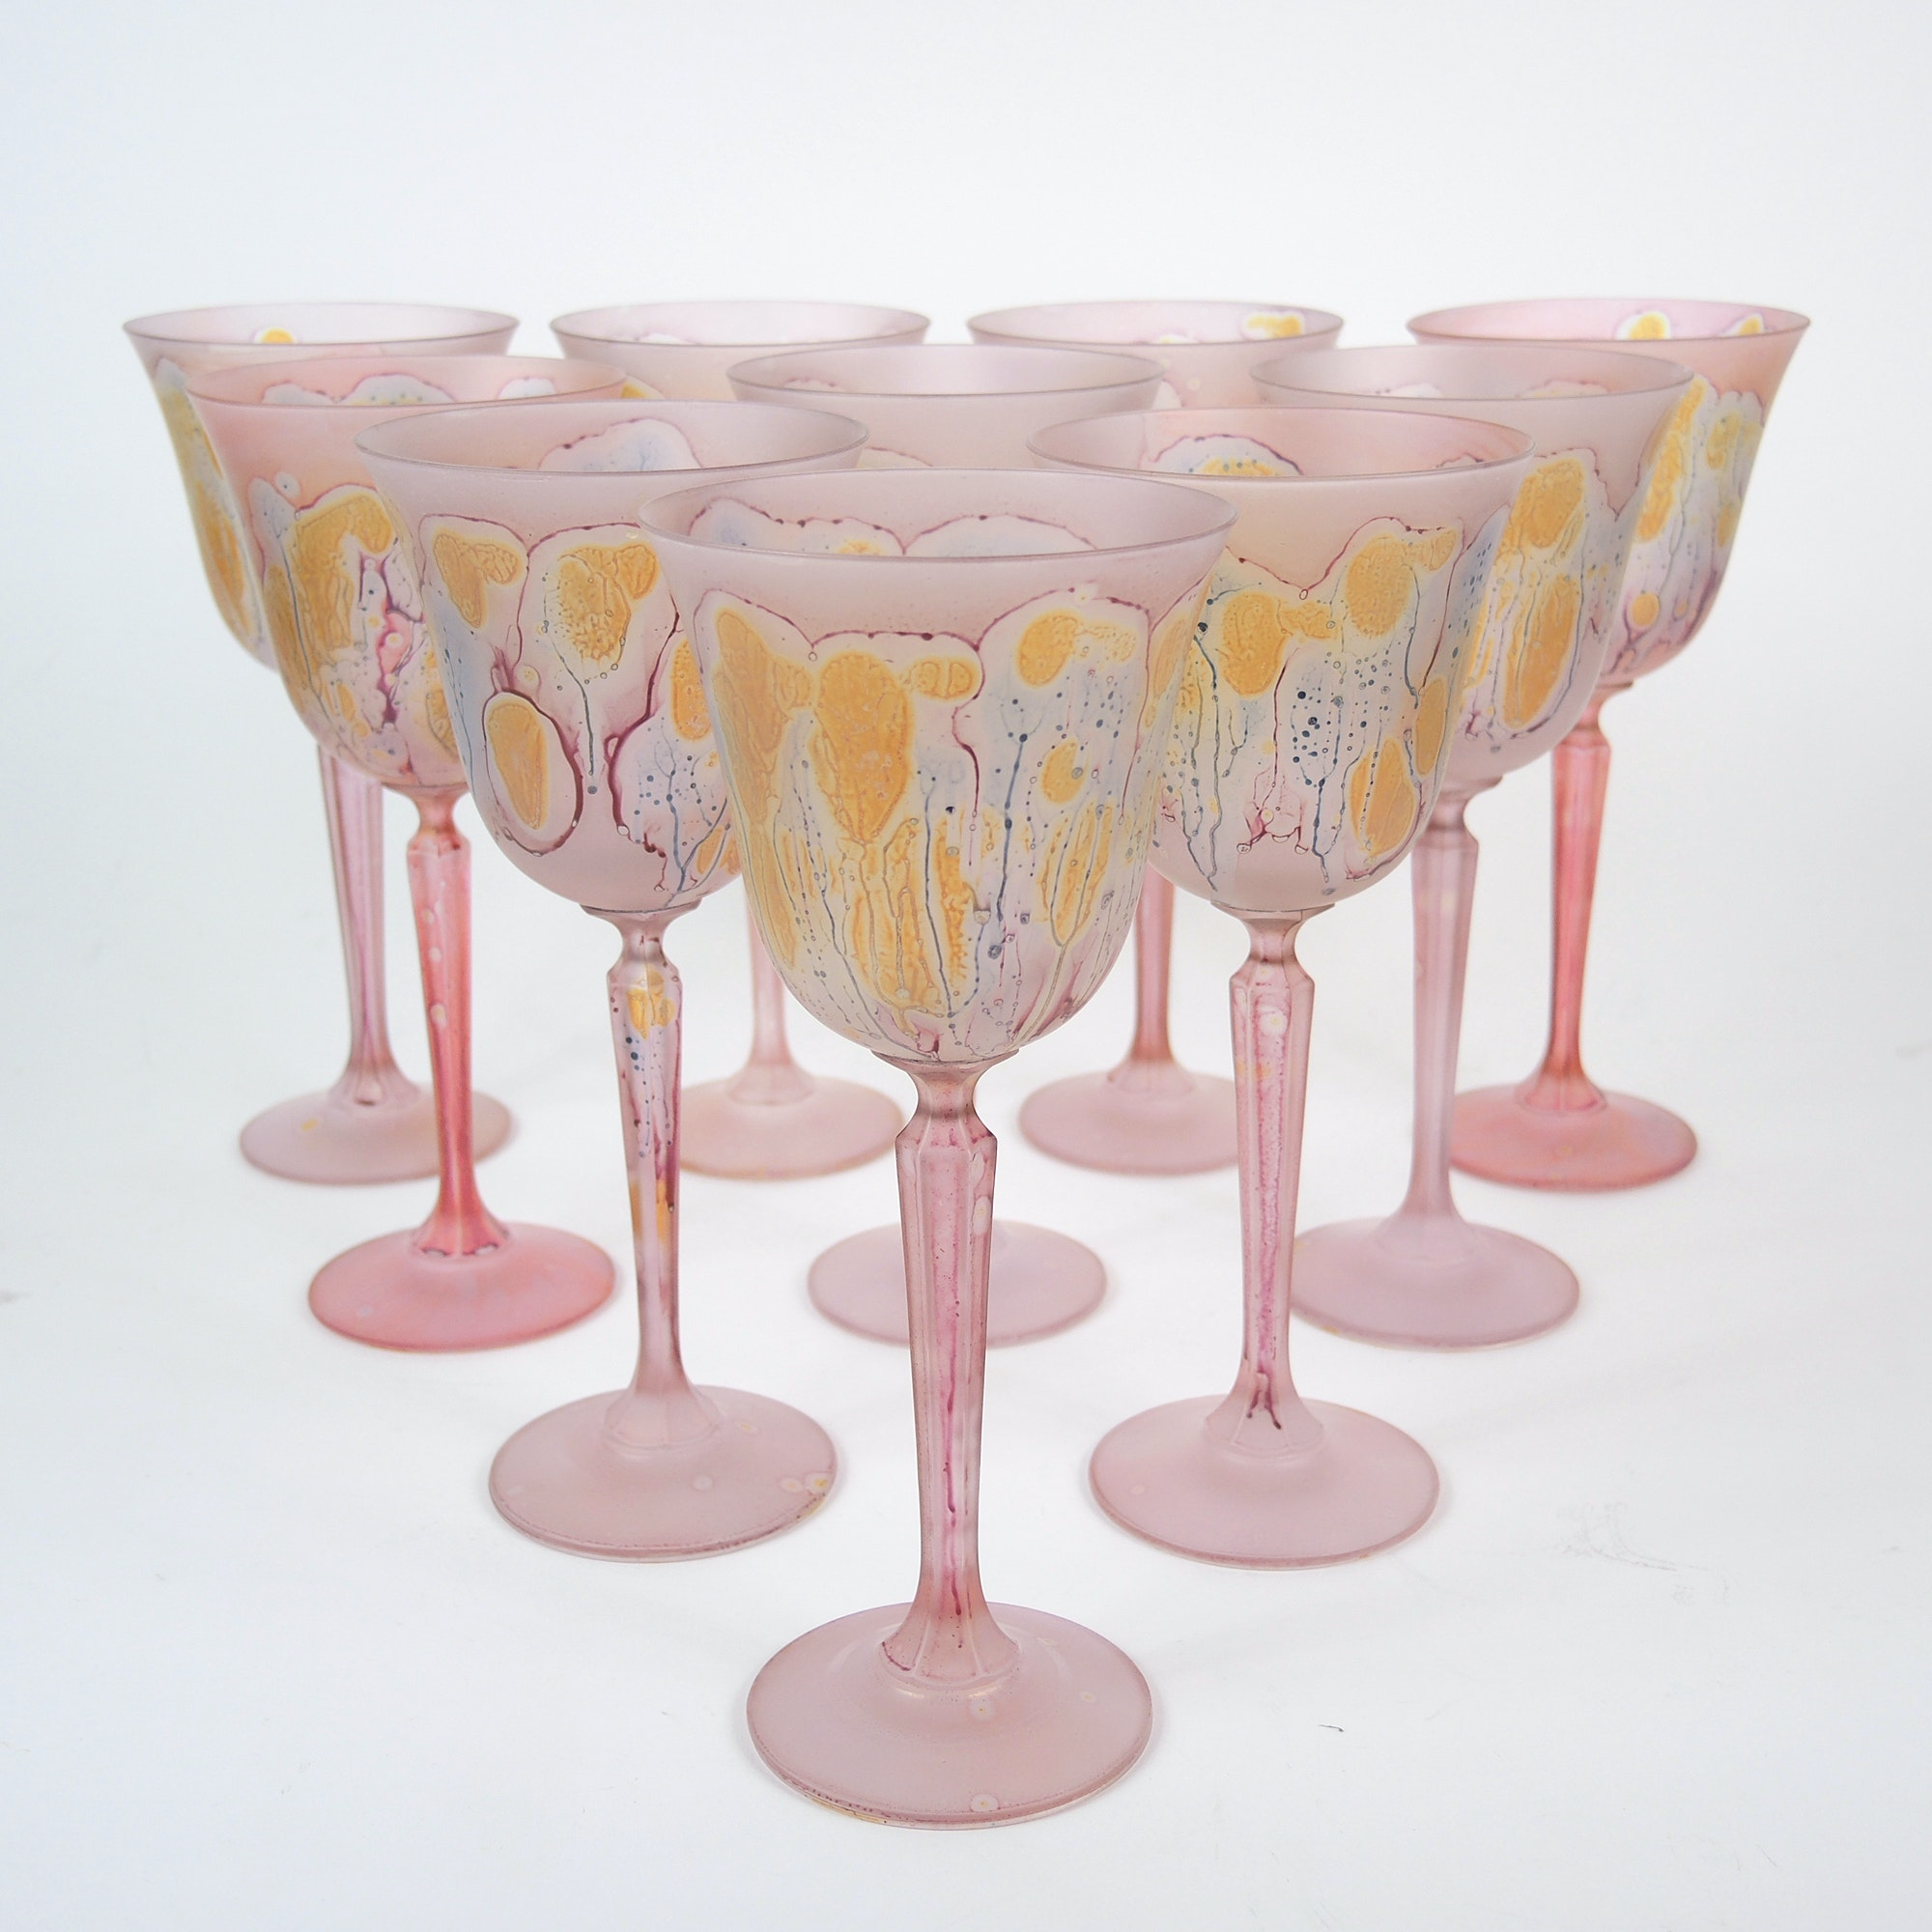 Hand Painted Jerusalem Glass Goblets By Ilanit